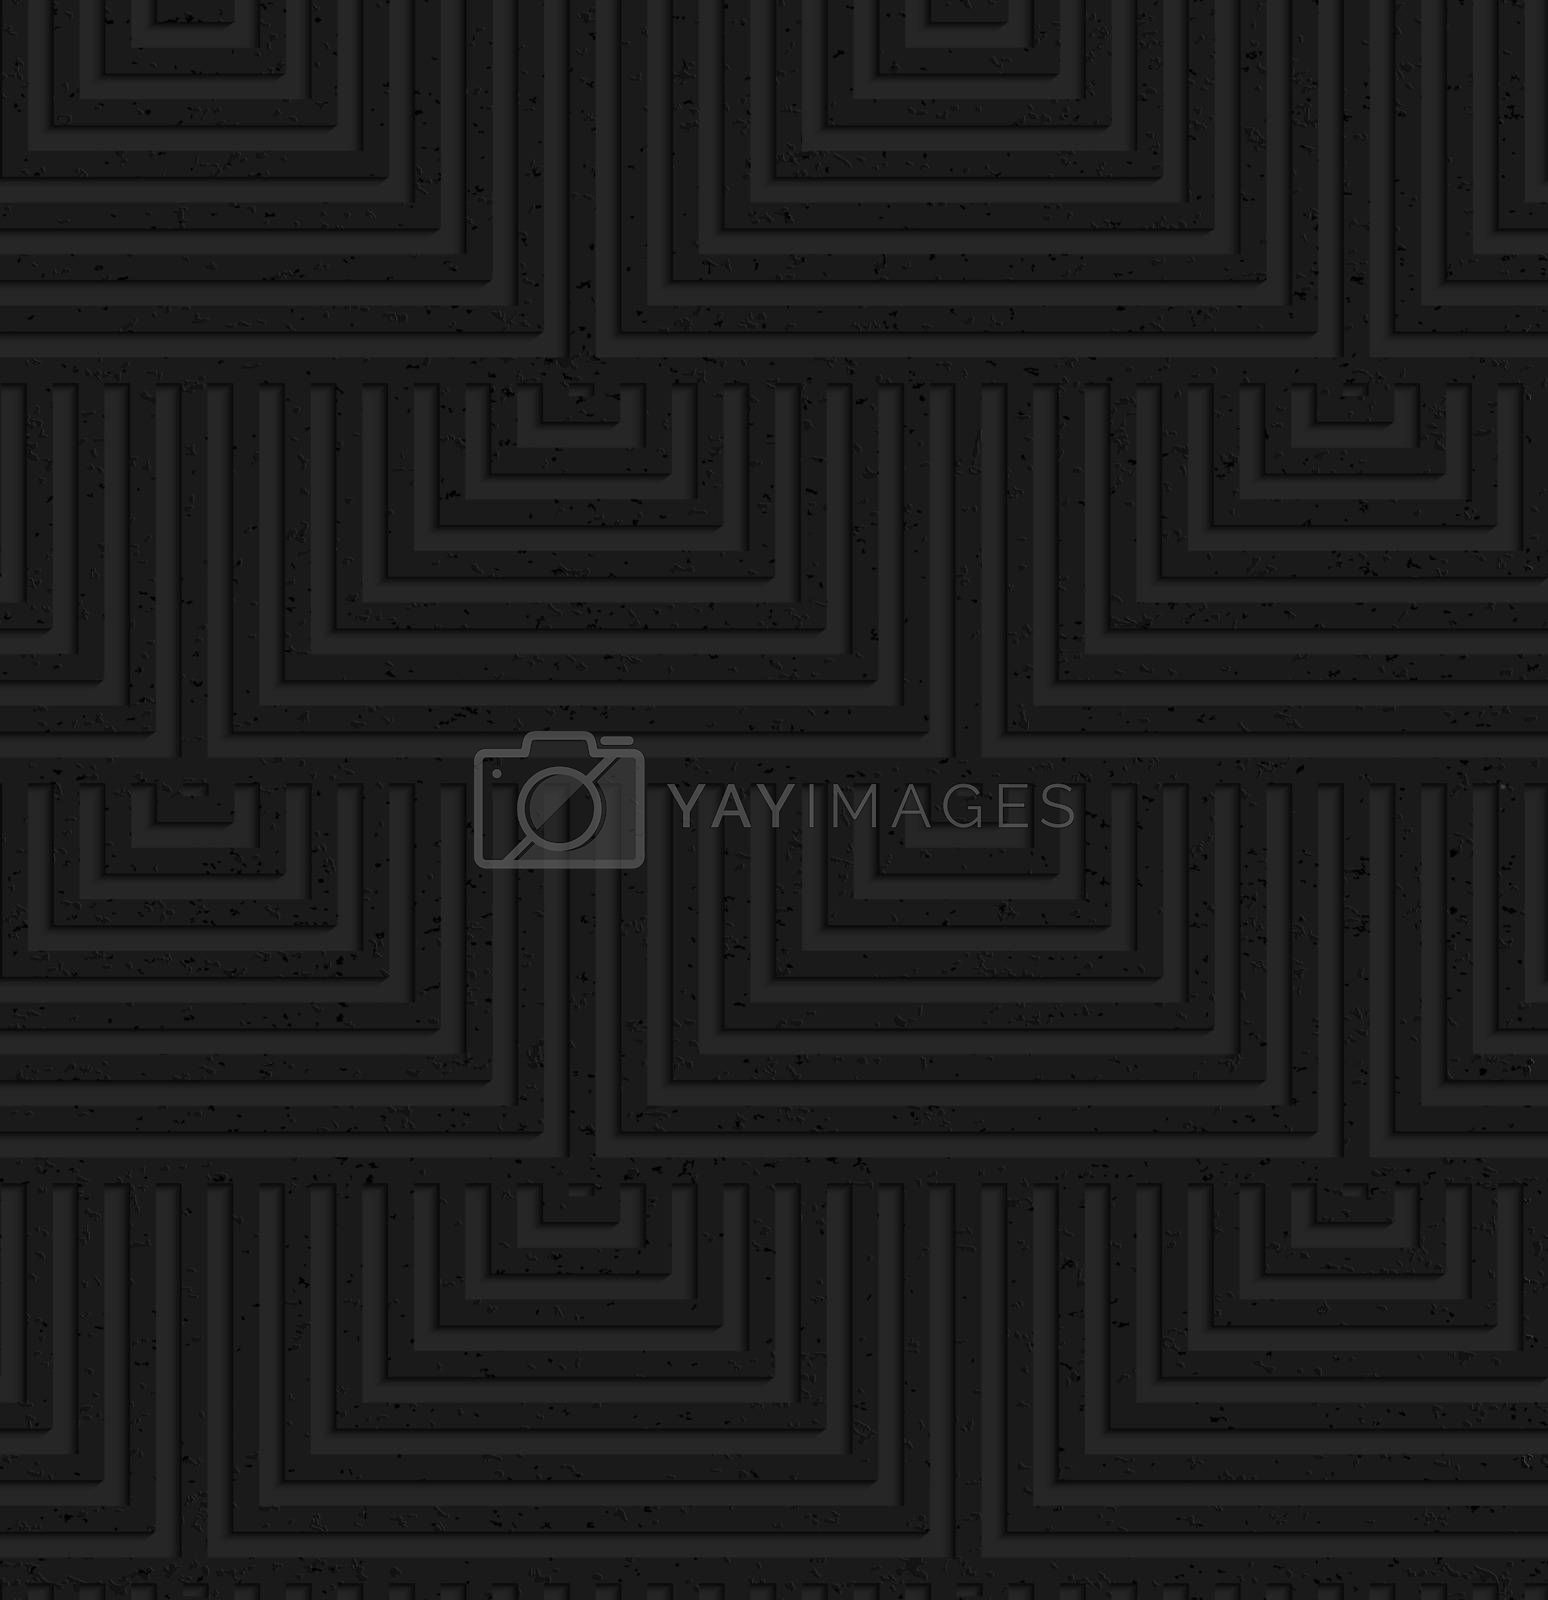 Seamless geometric background. Pattern with 3D texture and realistic shadow.Textured black plastic overlapping squares.